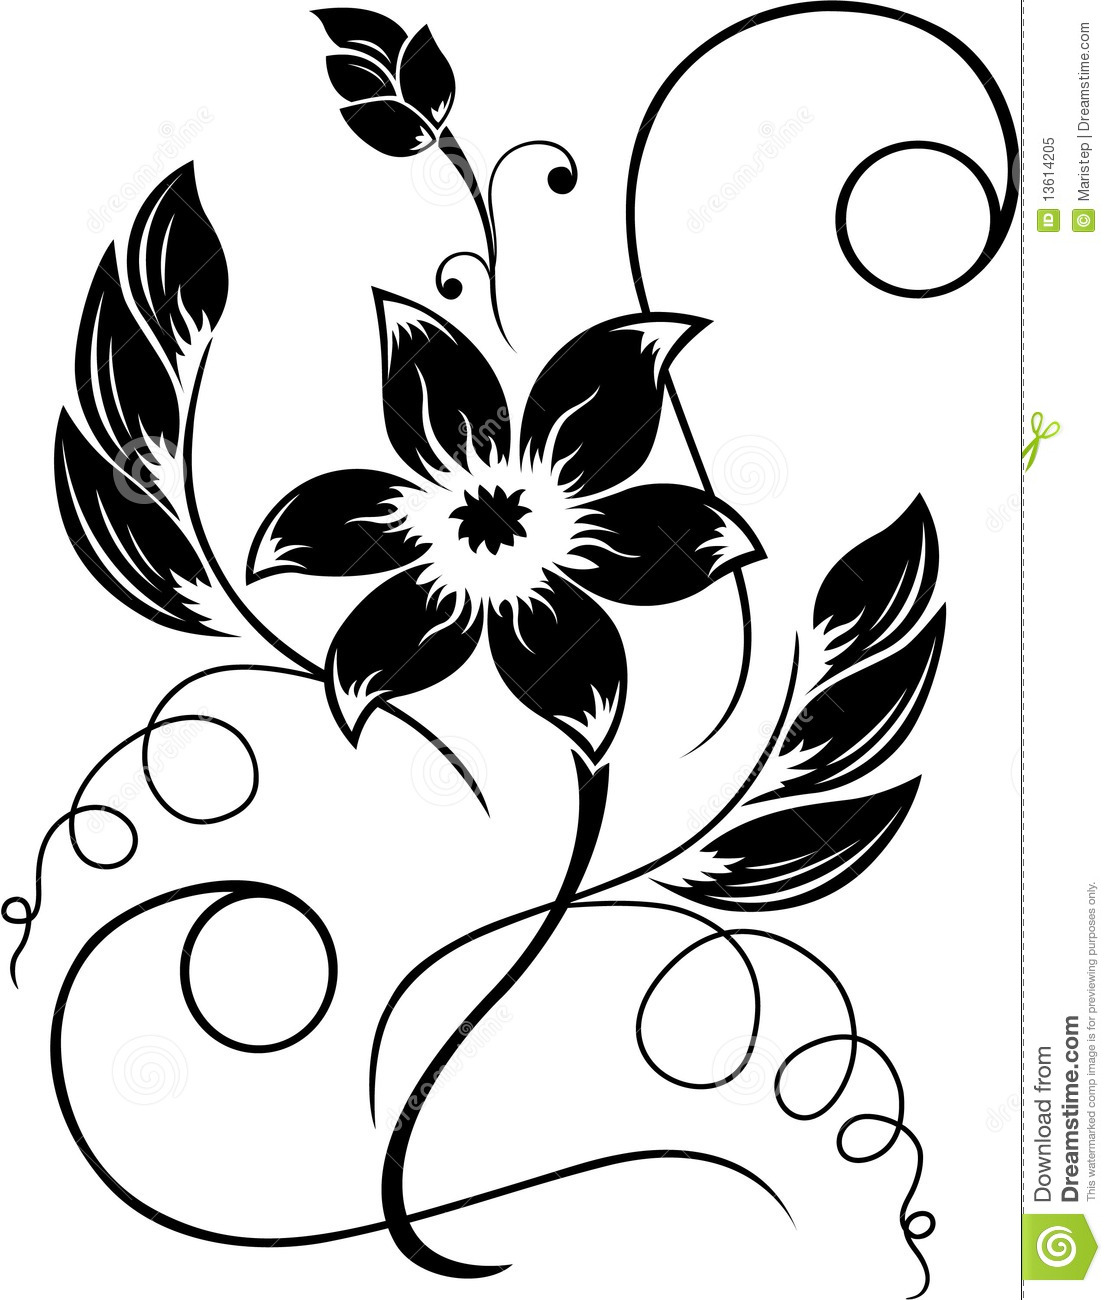 Black Flower And Bud Pattern Royalty Free Stock Photos: Flower Black A White Pattern Stock Vector